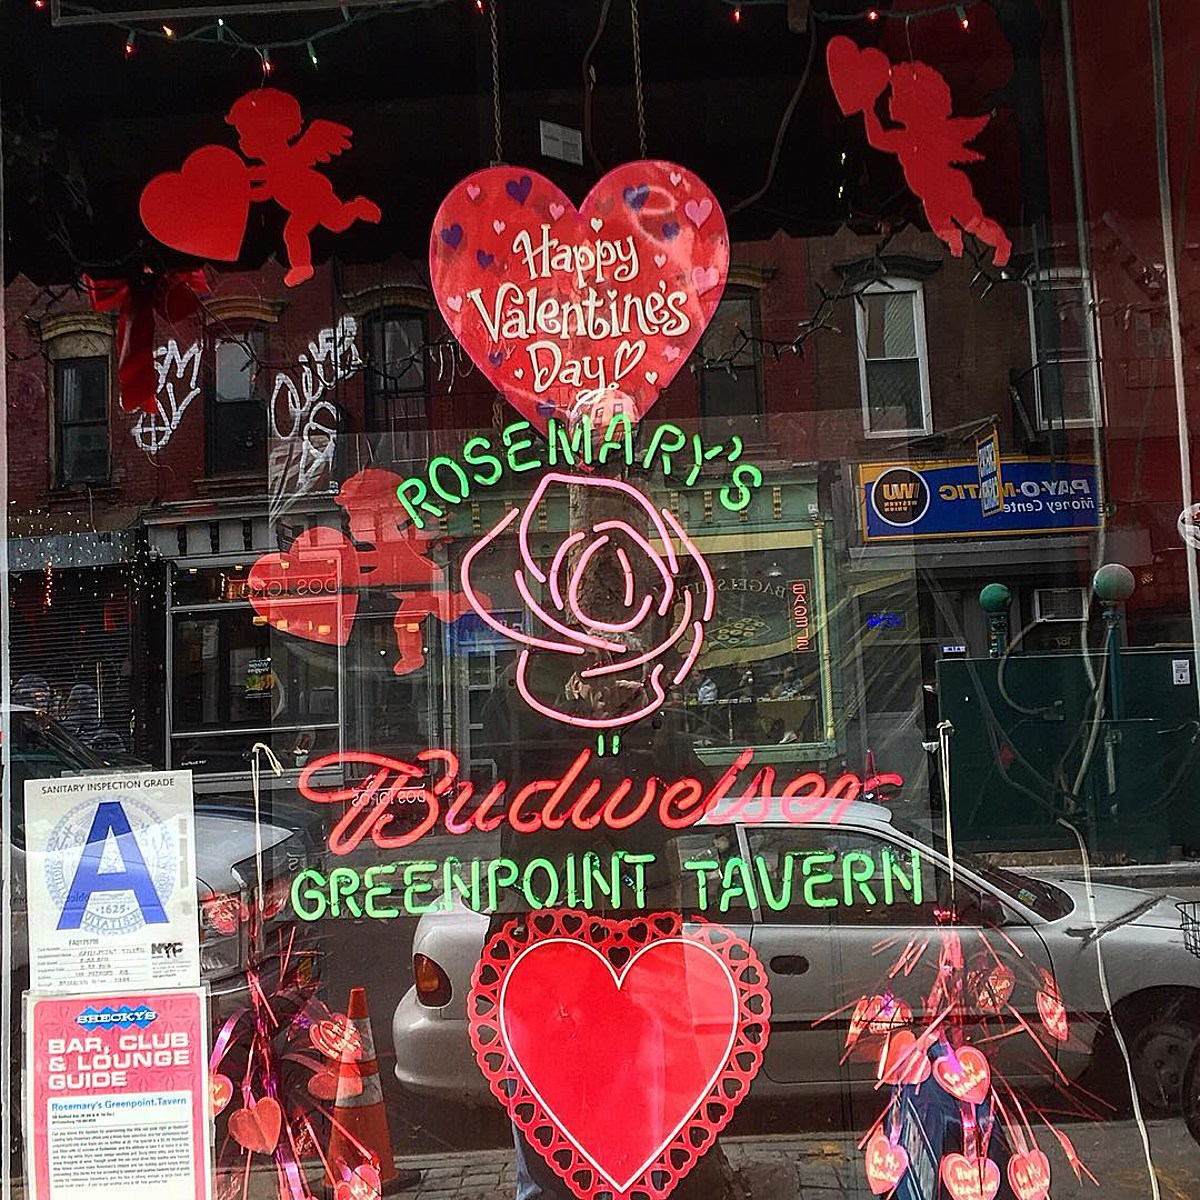 Rosemary's Greenpoint Tavern closing at the end of the month